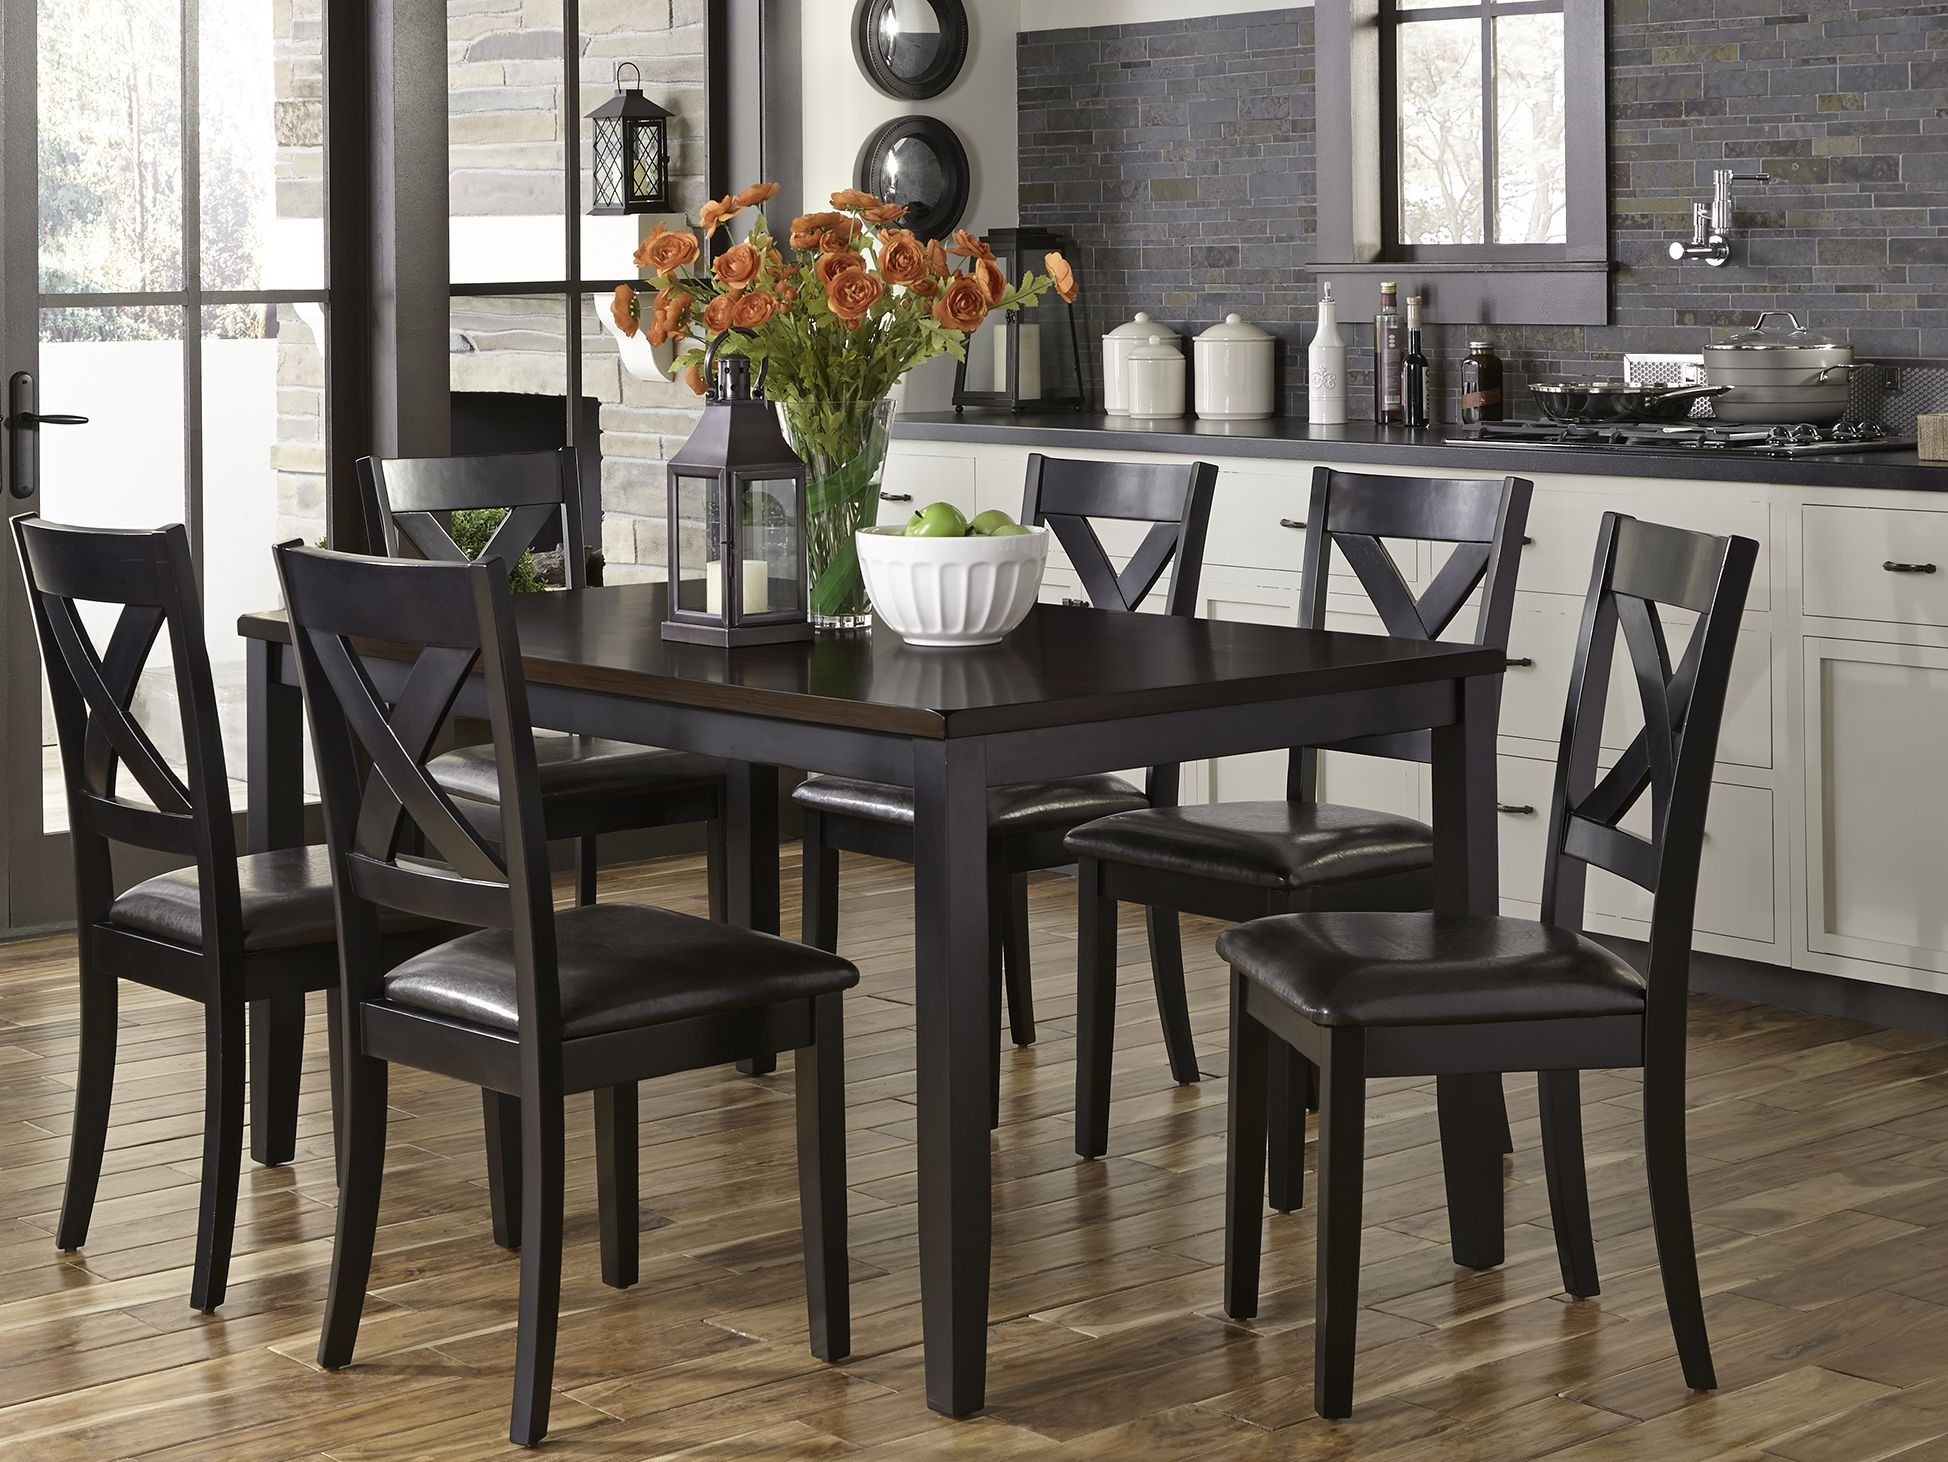 thornton ii black and brown 7 piece rectangular dining room set from liberty coleman furniture. Black Bedroom Furniture Sets. Home Design Ideas